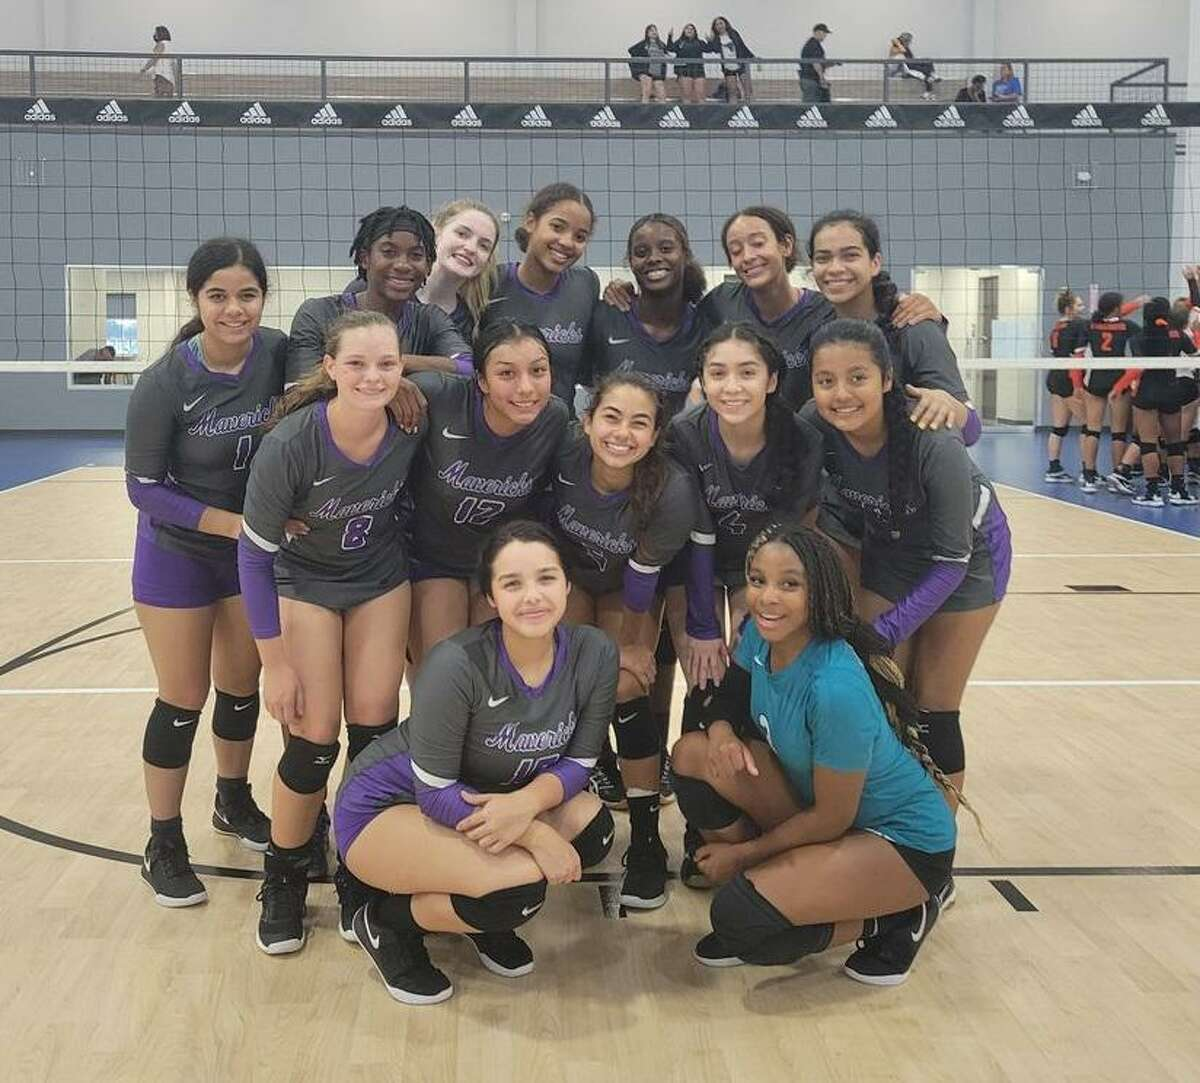 The Morton Ranch volleyball team has more than tripled its 2020 victory total during a 10-7 start, including tournament wins against Mayde Creek and Katy Taylor.